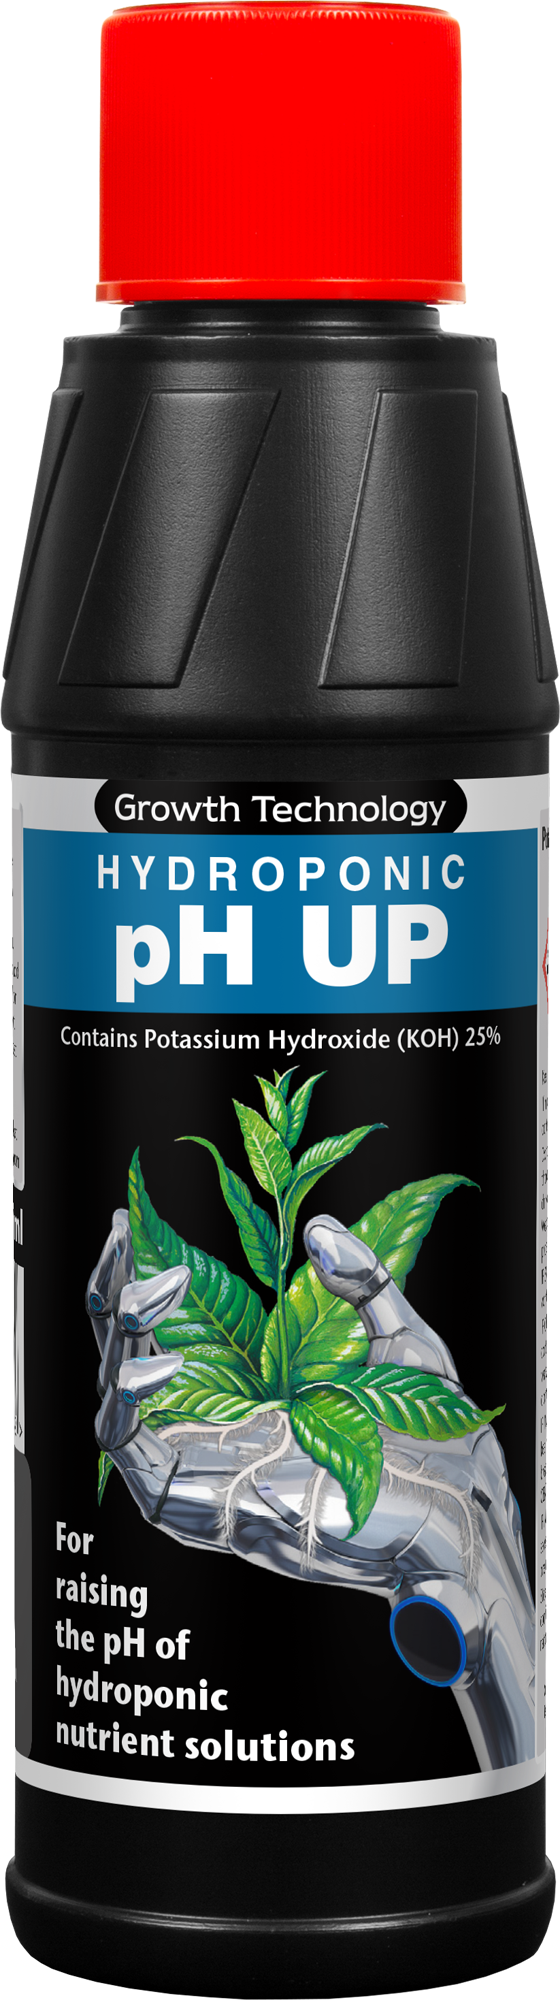 Growth Technology - pH Up - NPK Technology Hydroponics